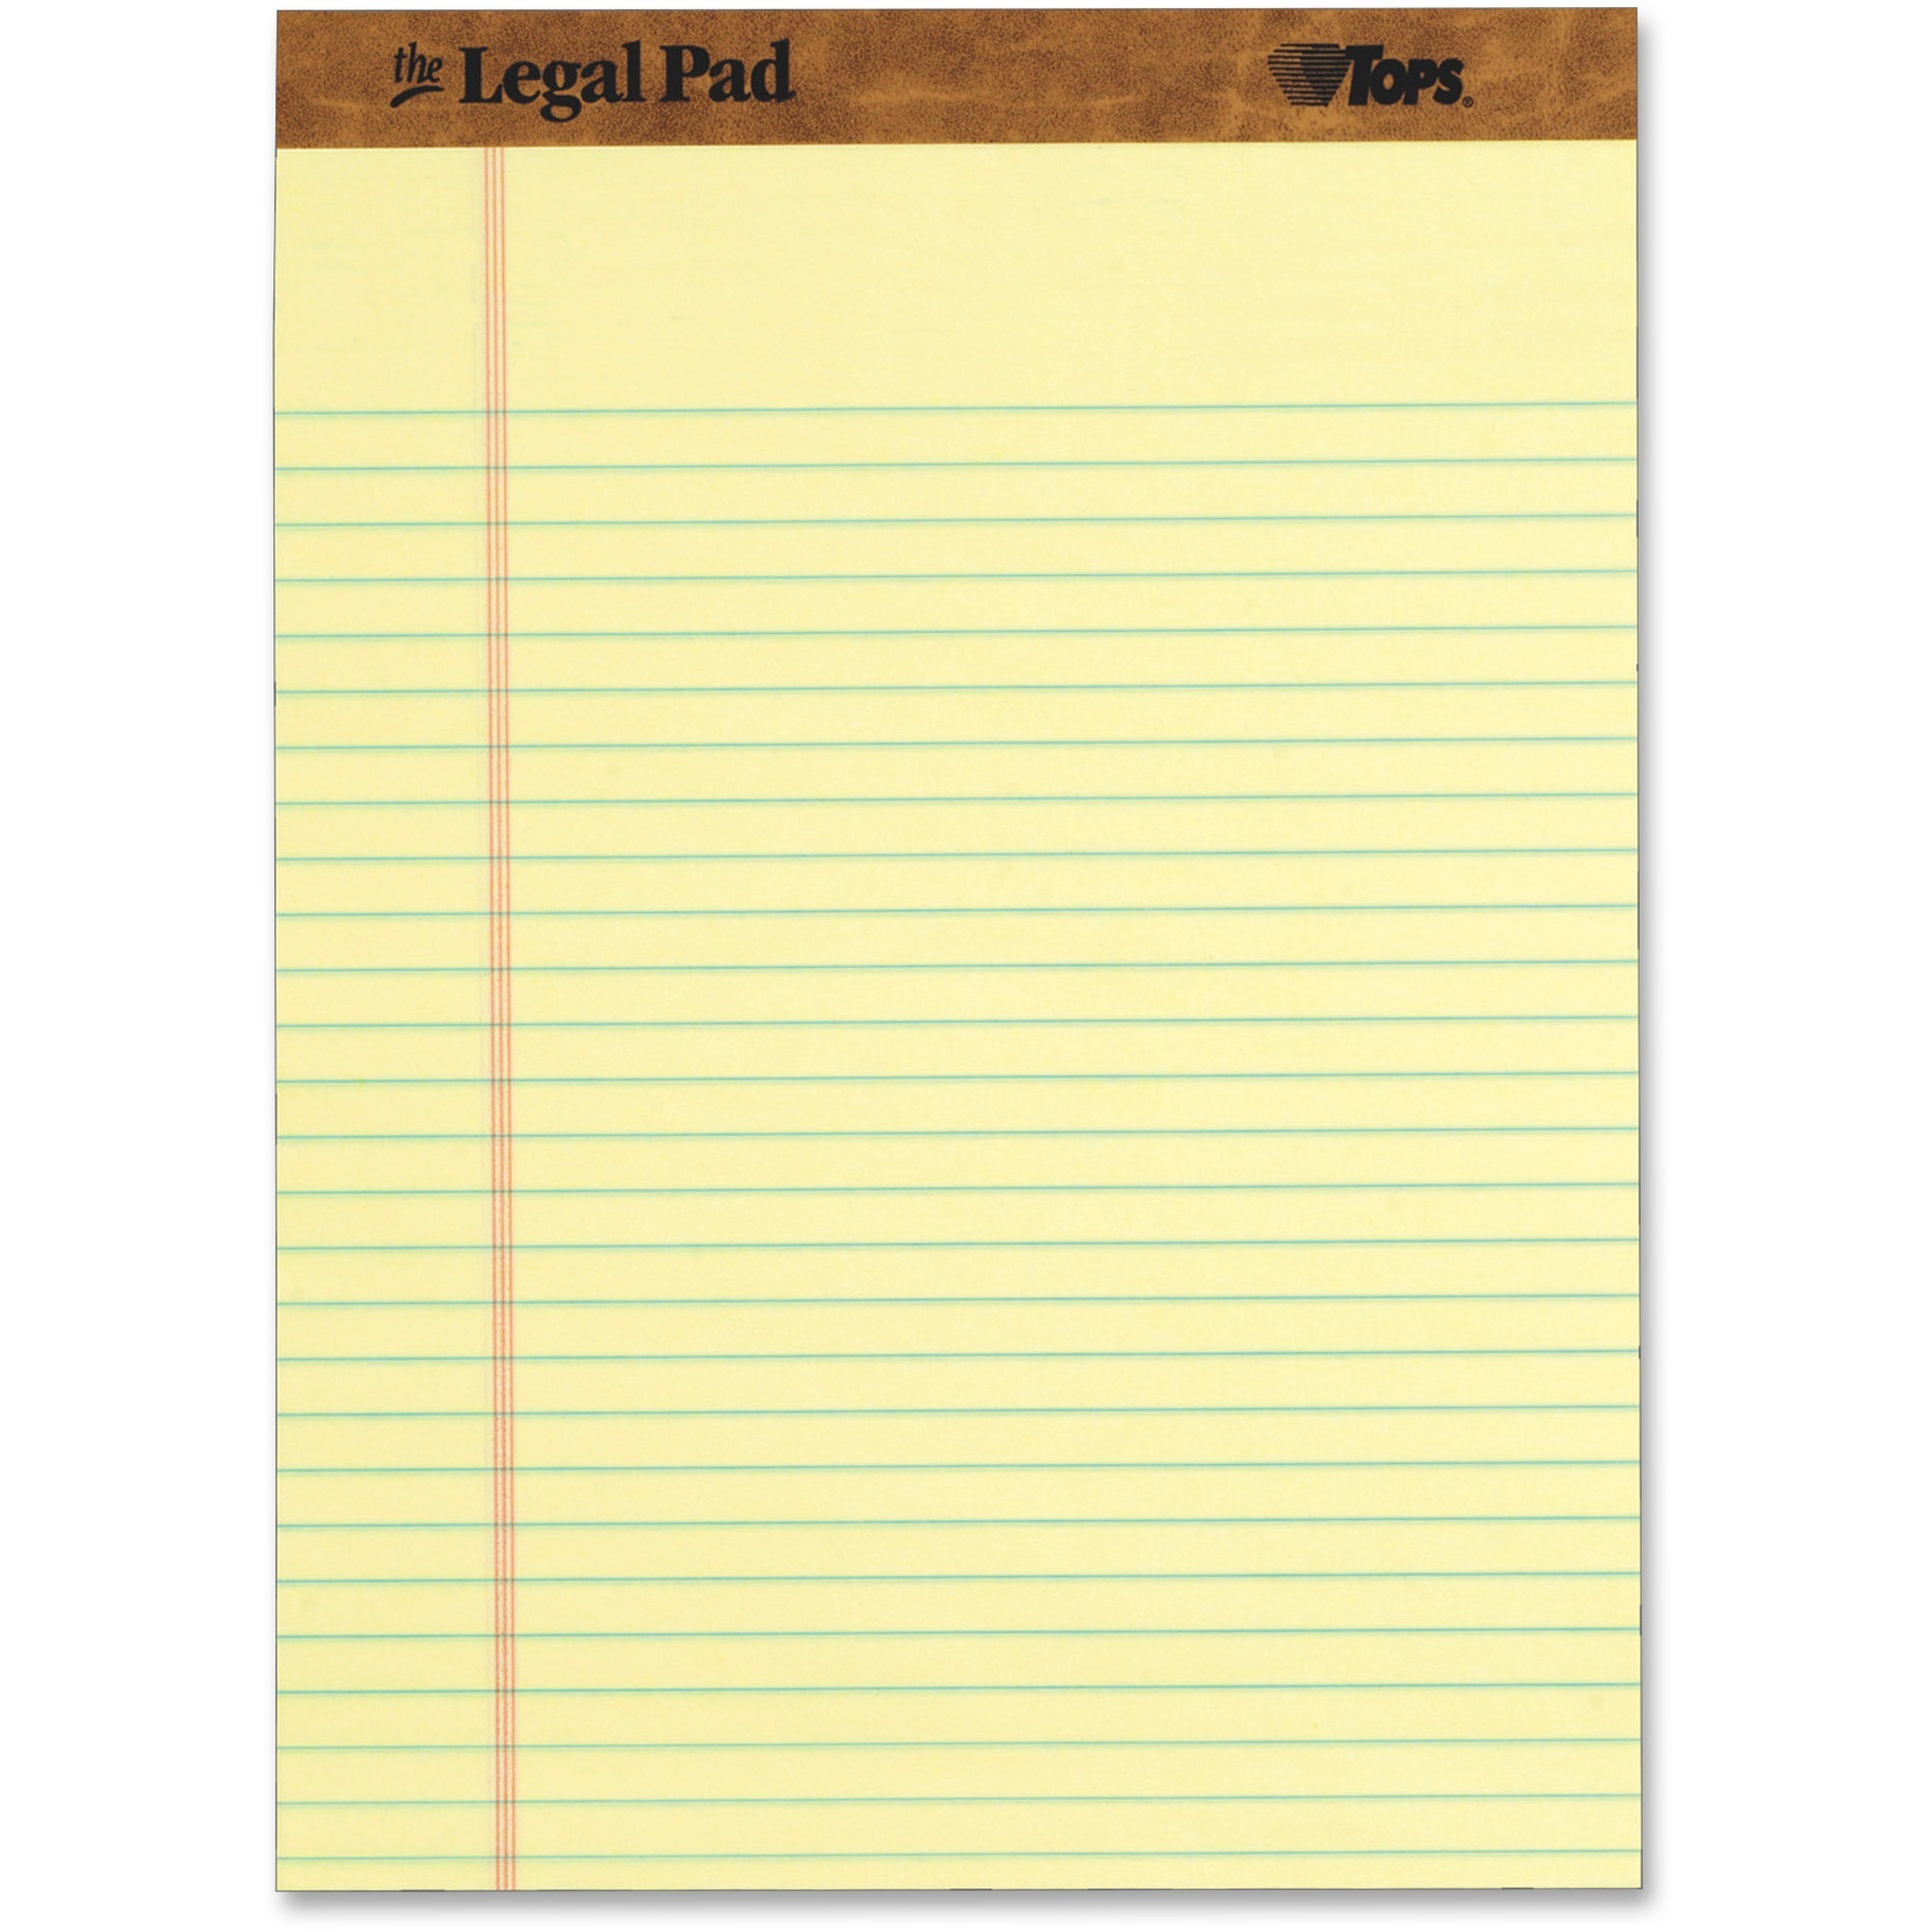 TOPS The Legal Pad Writing Pads, Legal Rule, 50 Sheets, Canary, (7532)